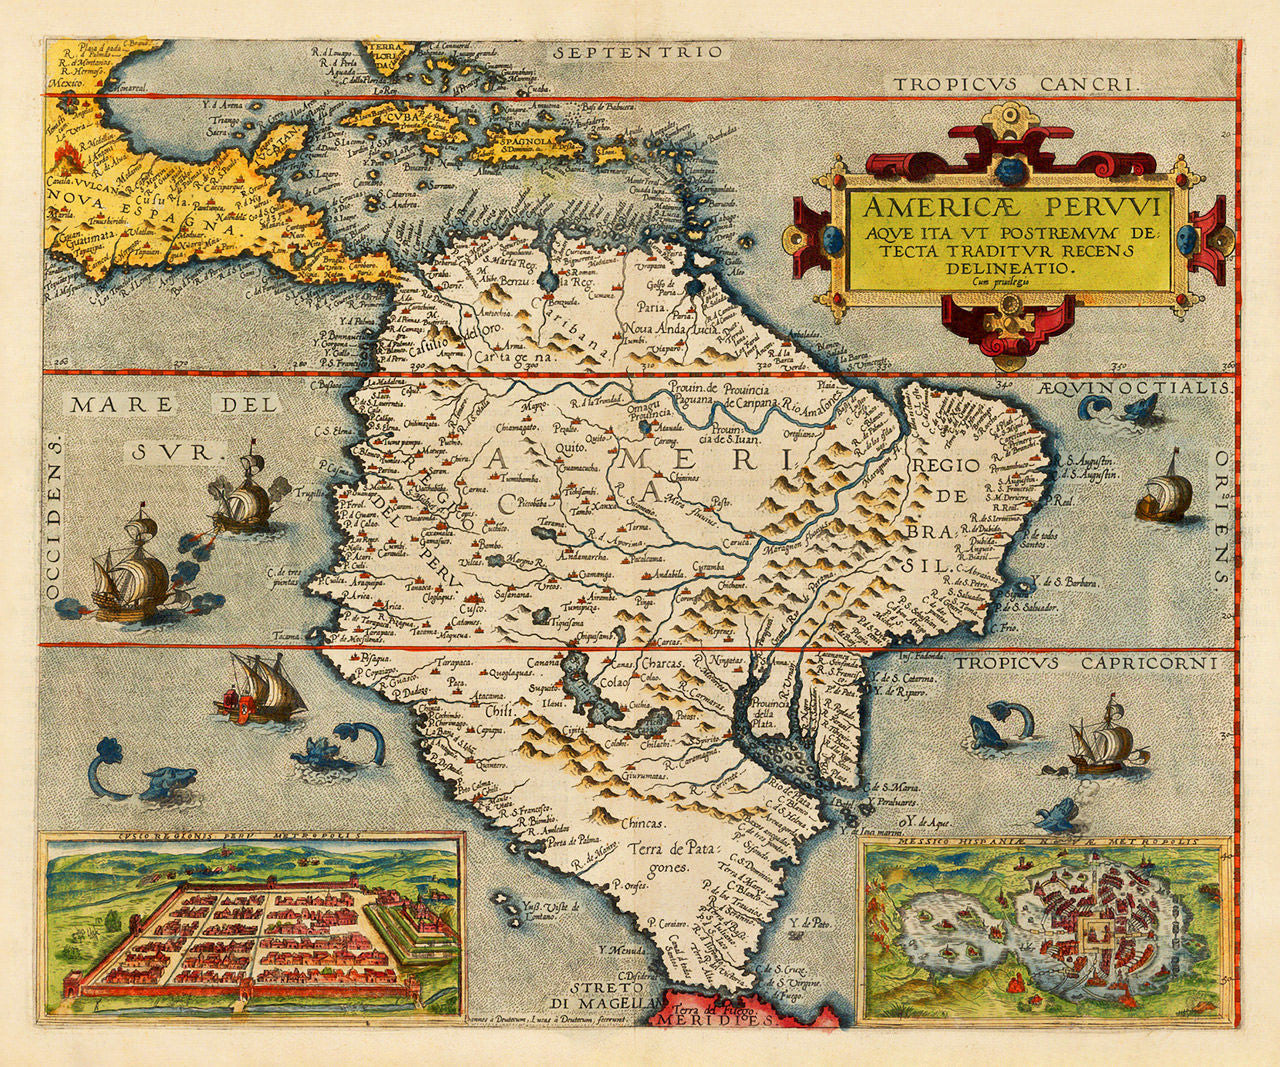 South America, 1578, Americae Pervvi, Gerard de Jode, Old Map